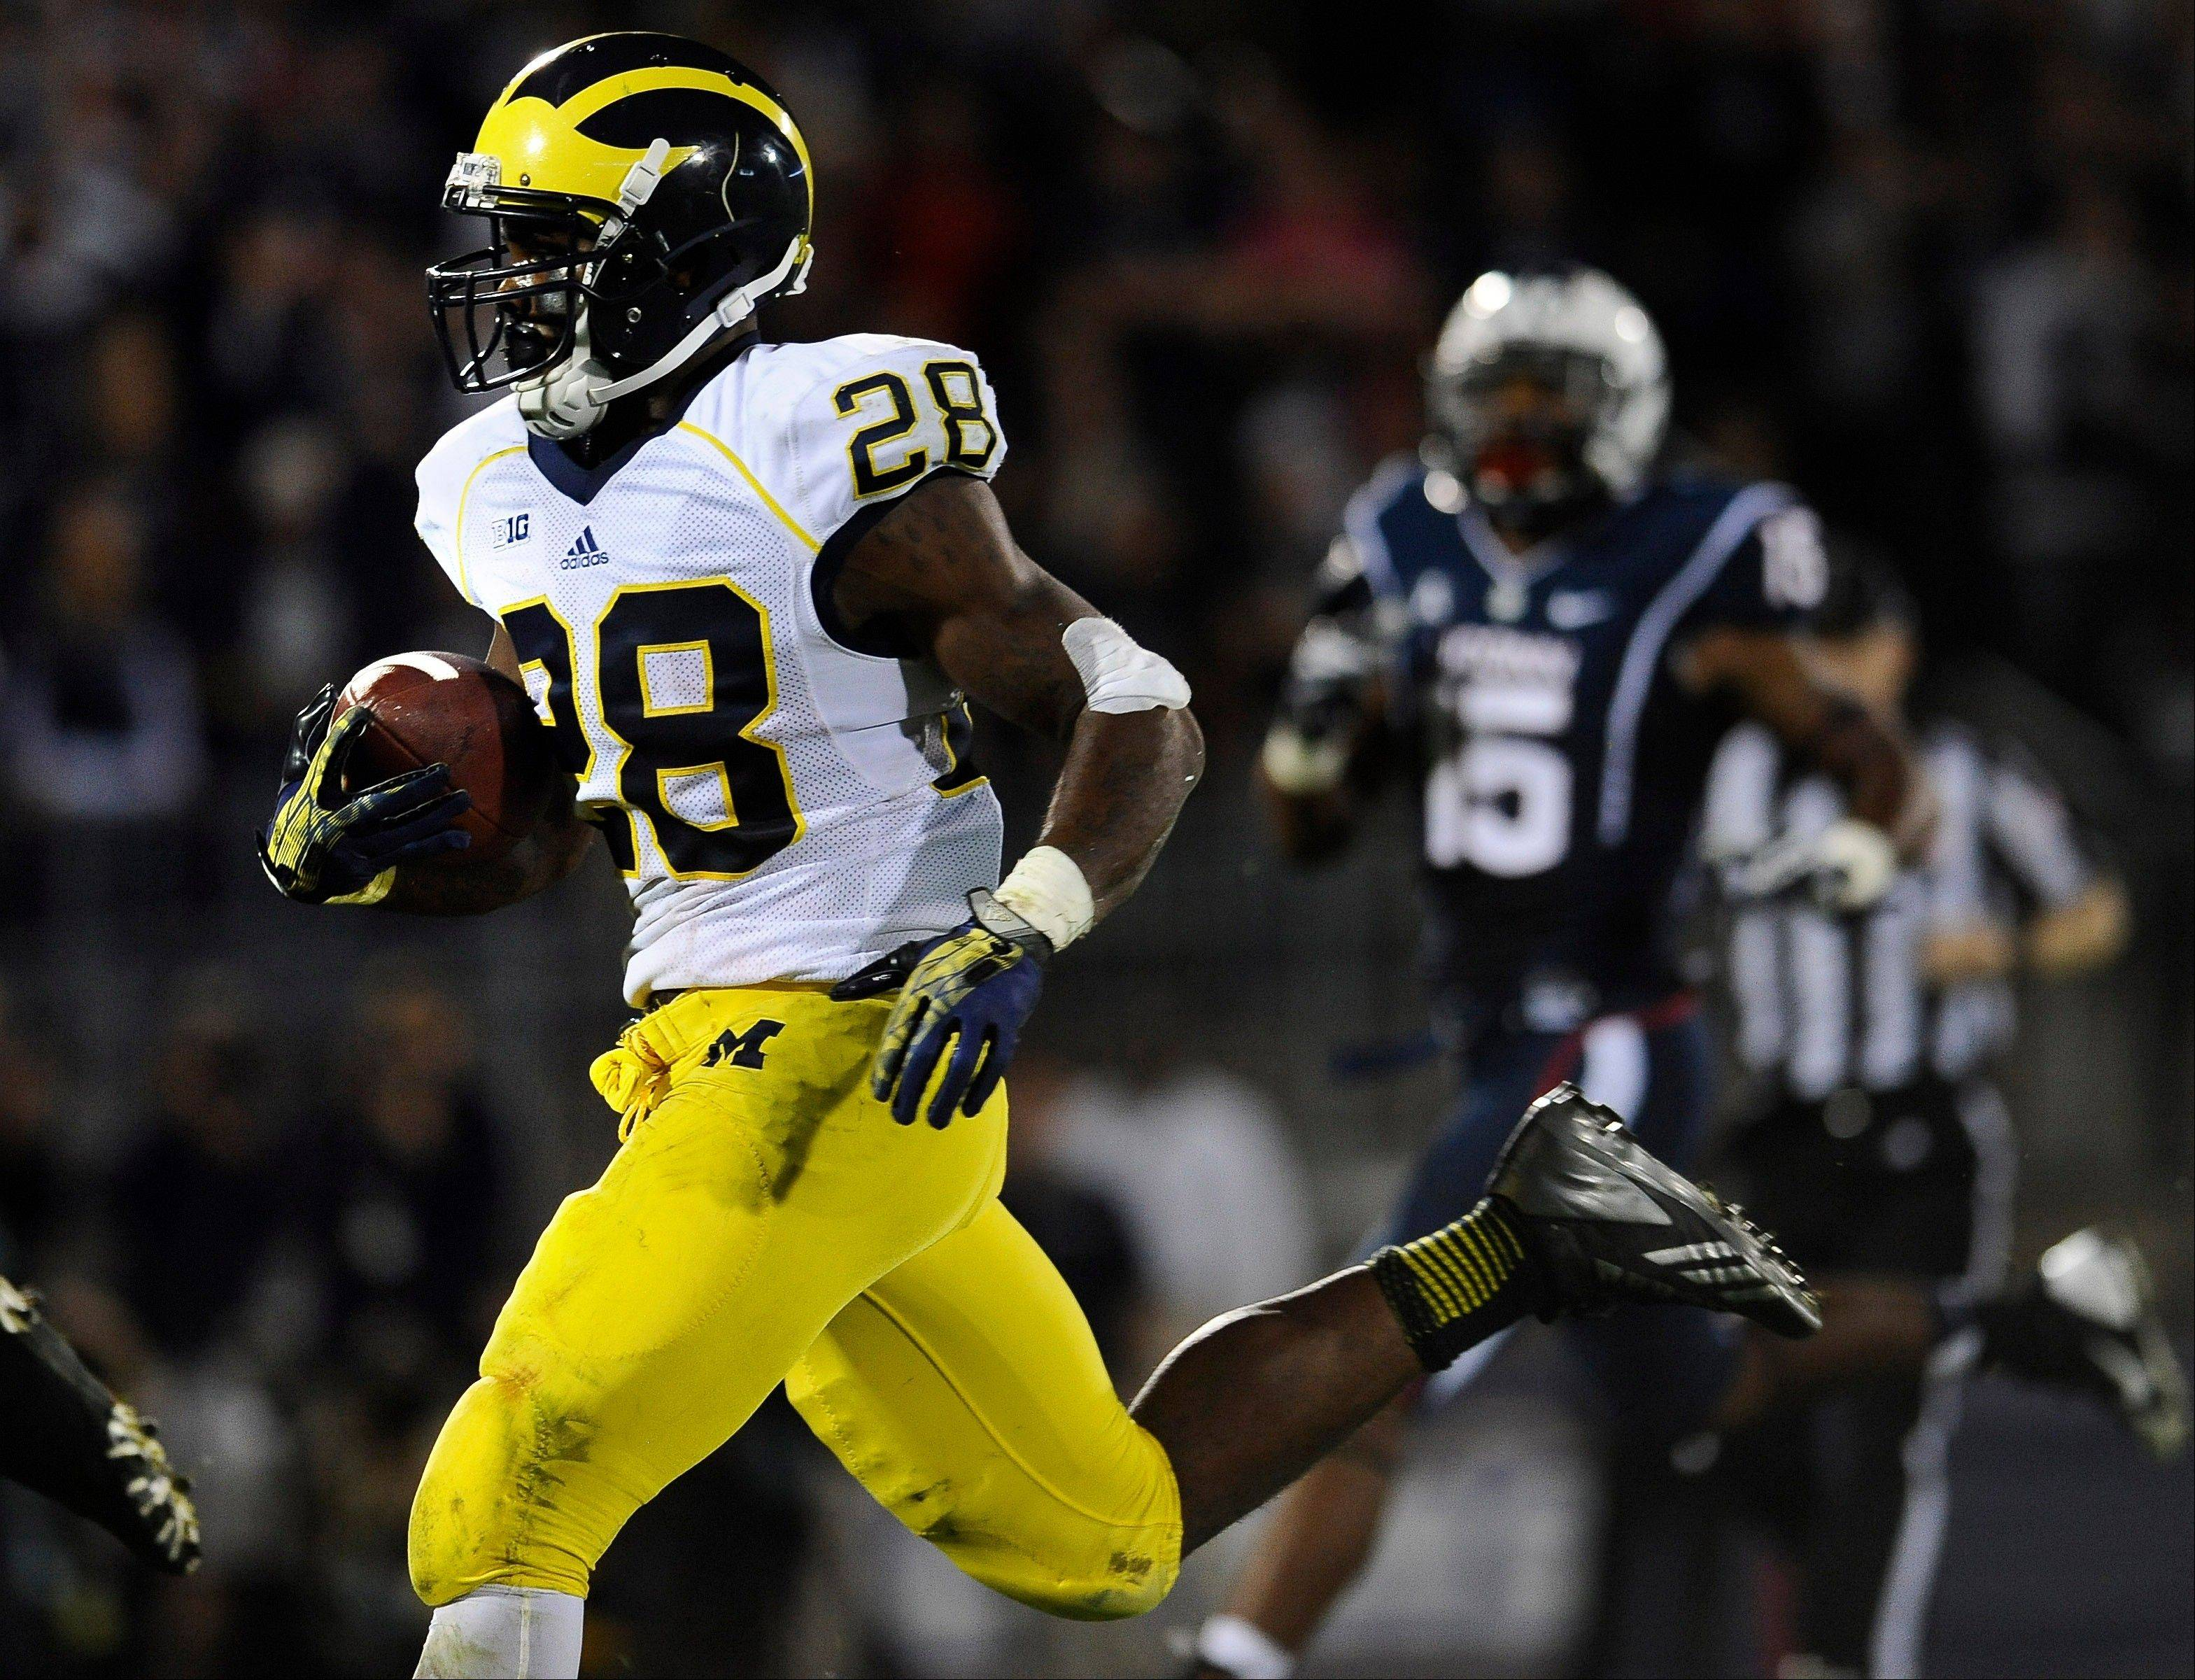 Michigan running back Fitzgerald Toussaint runs for 35 yards to score a touchdown during the second half of Saturday night�s game against Connecticut at Rentschler Field in East Hartford, Conn.